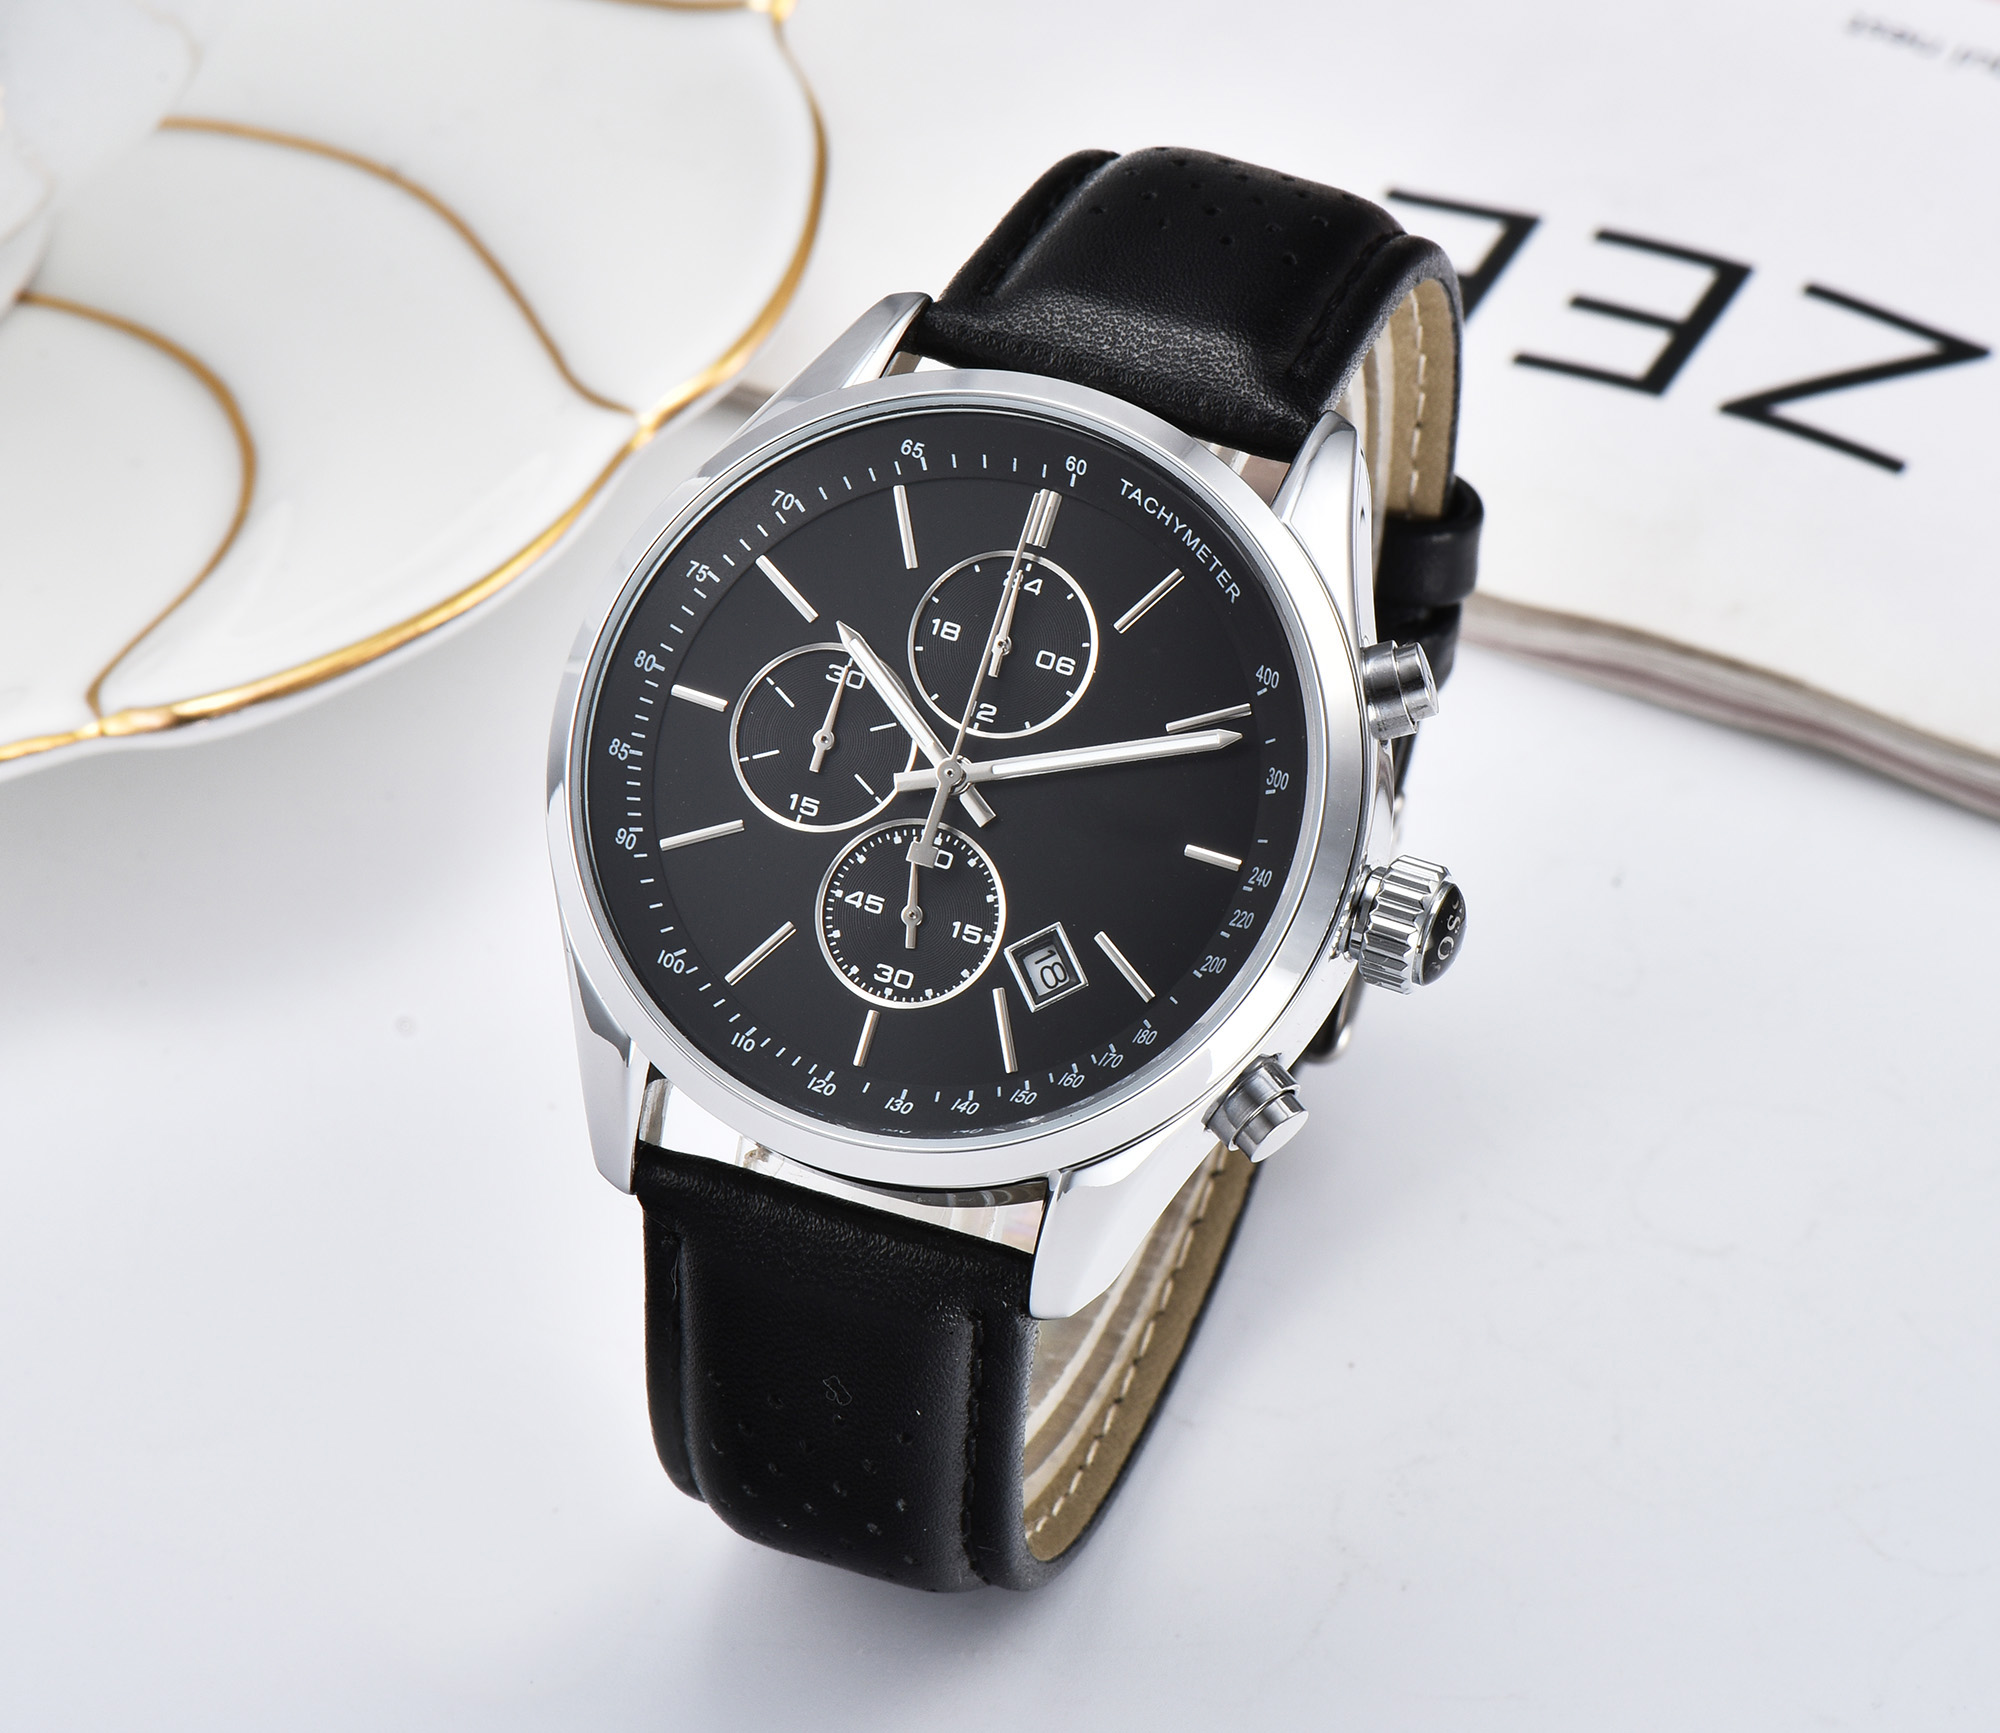 Top Brand Fossil Men's Watch AAA Chronograph Quartz Watches Luxury Men Leather Strap Wrist Watch Clock relojes para hombre 2020